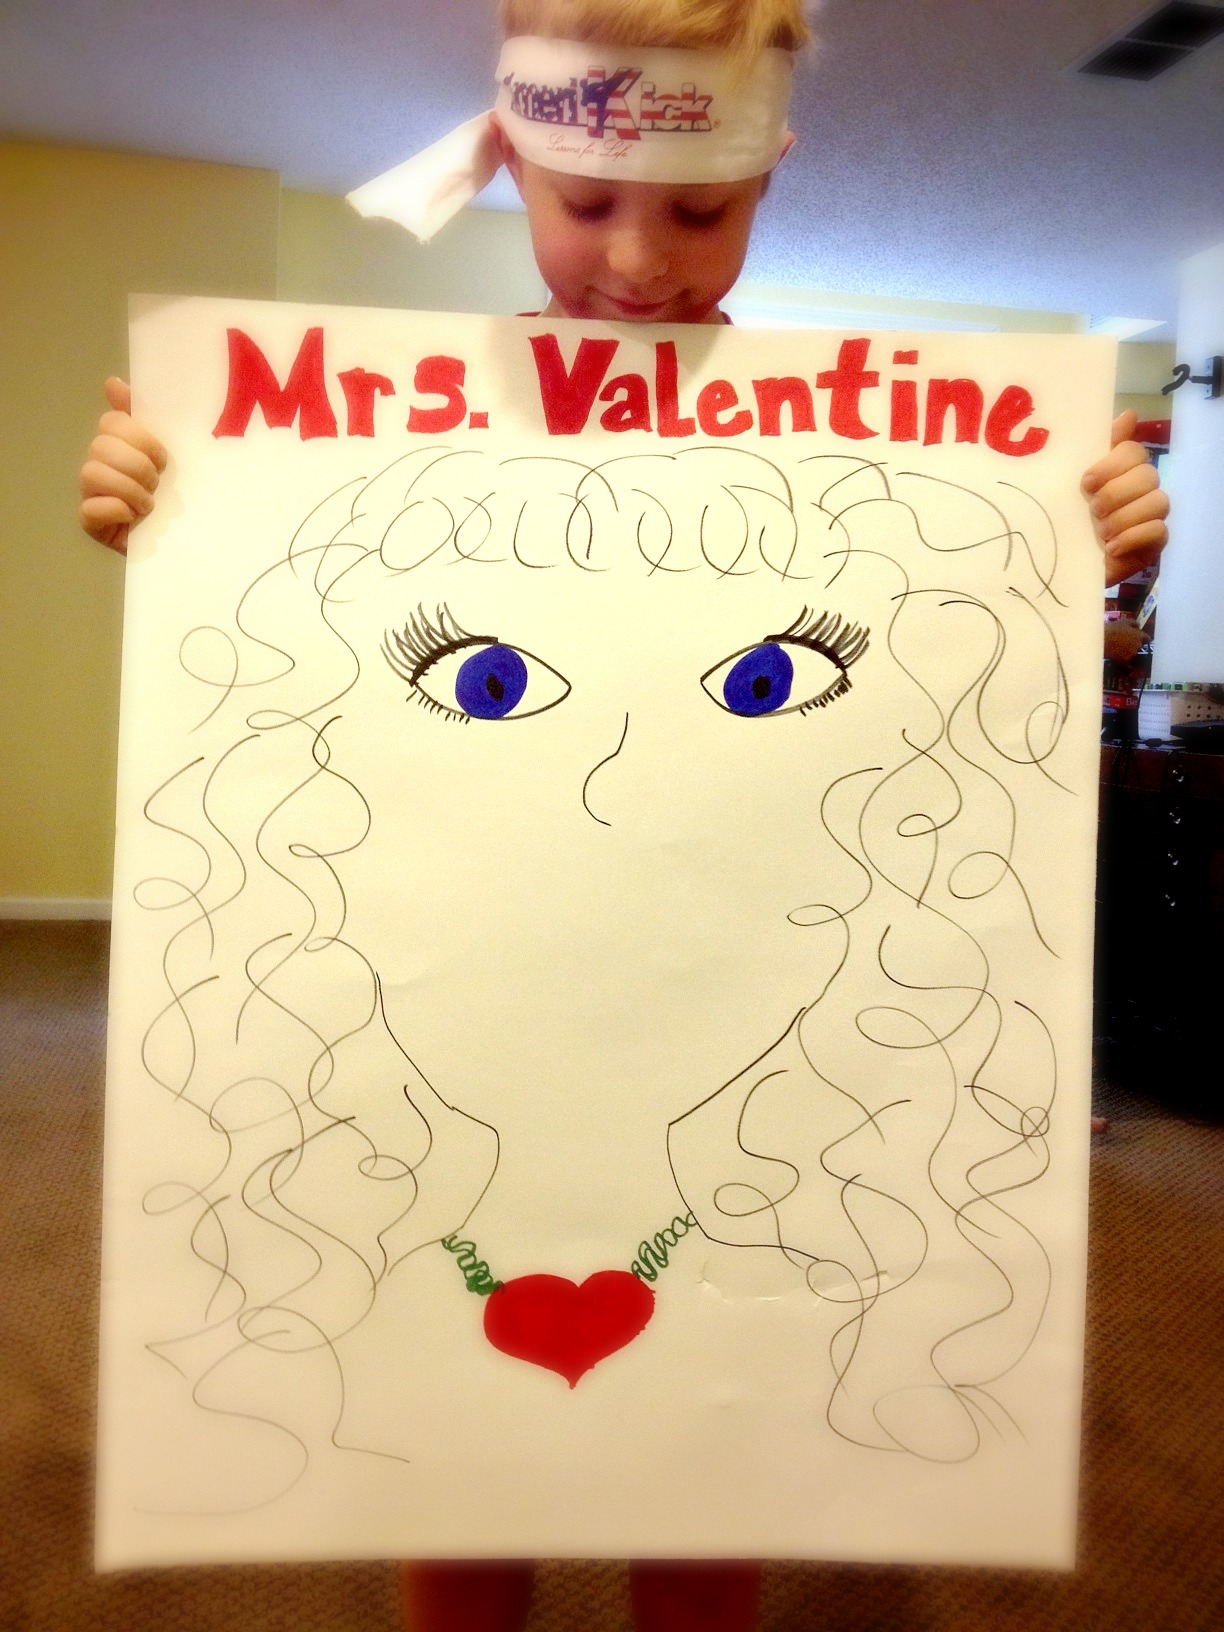 Pin The Lips On Mrs. Valentine (She Really Wants A Kiss!)